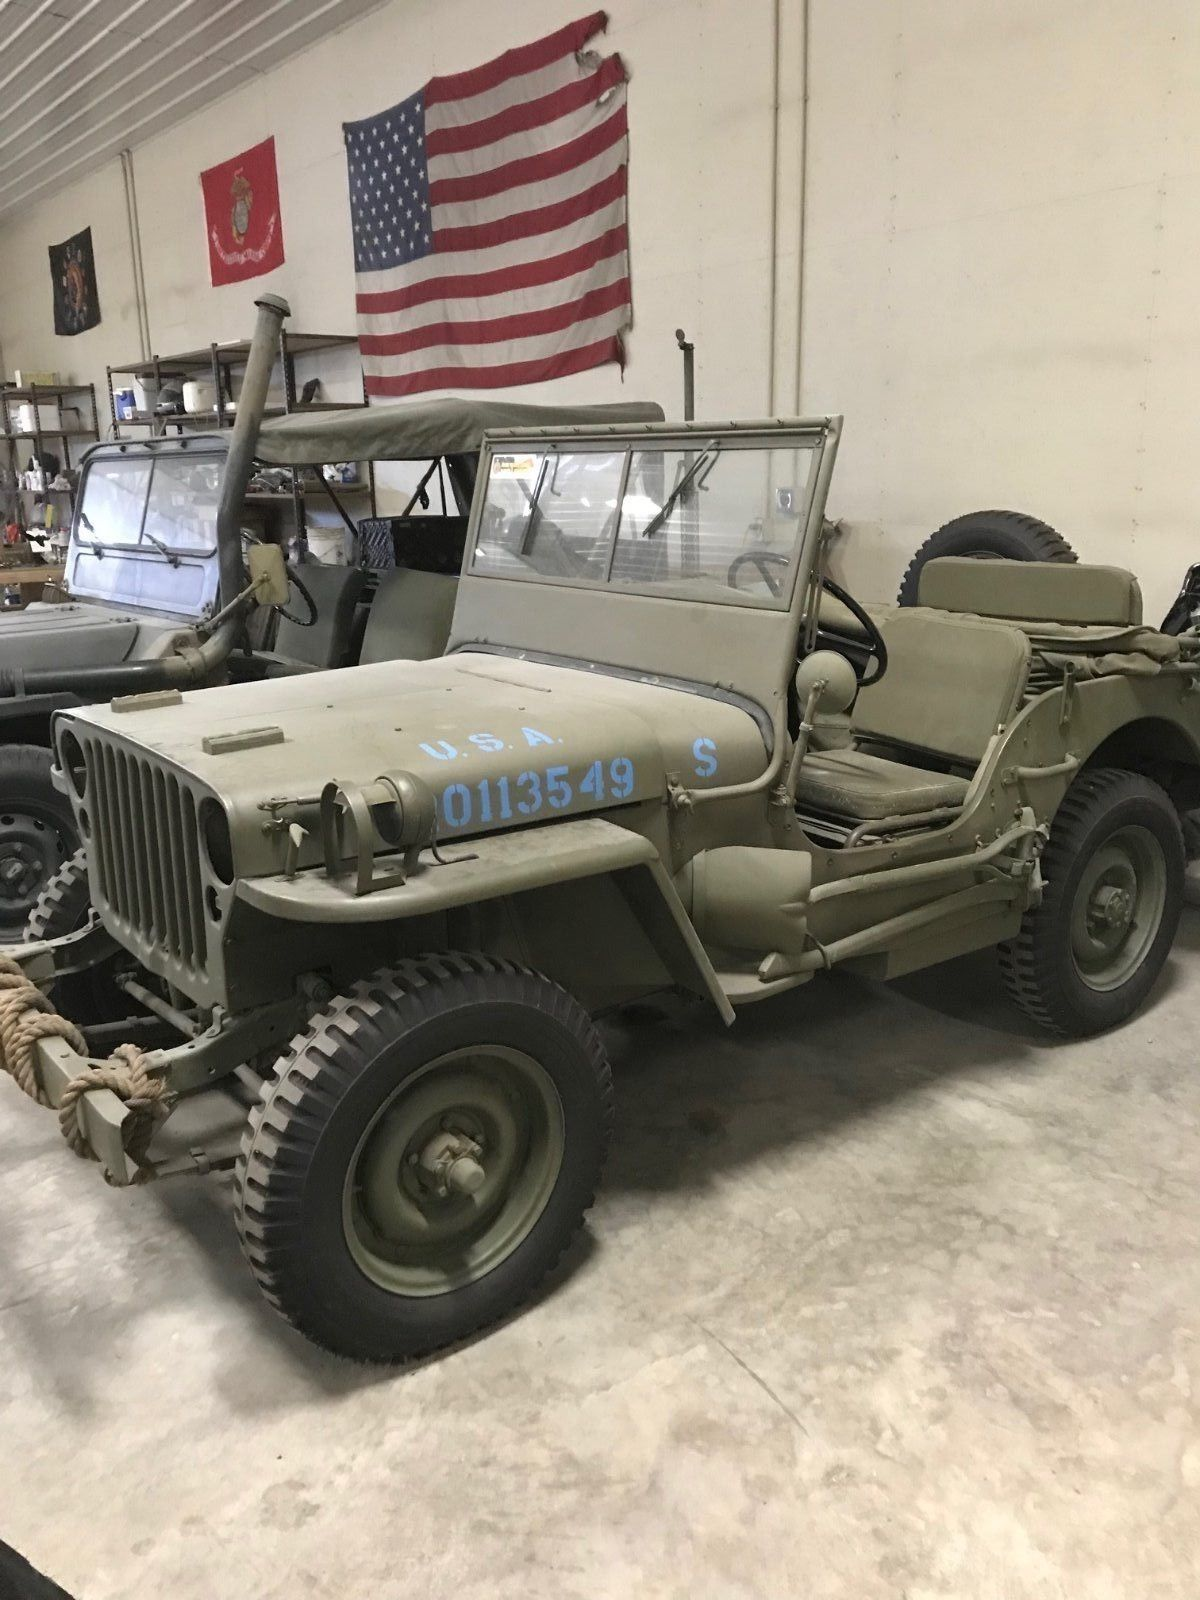 restored original WWII 1942 Ford Jeep GPW miluitary for sale